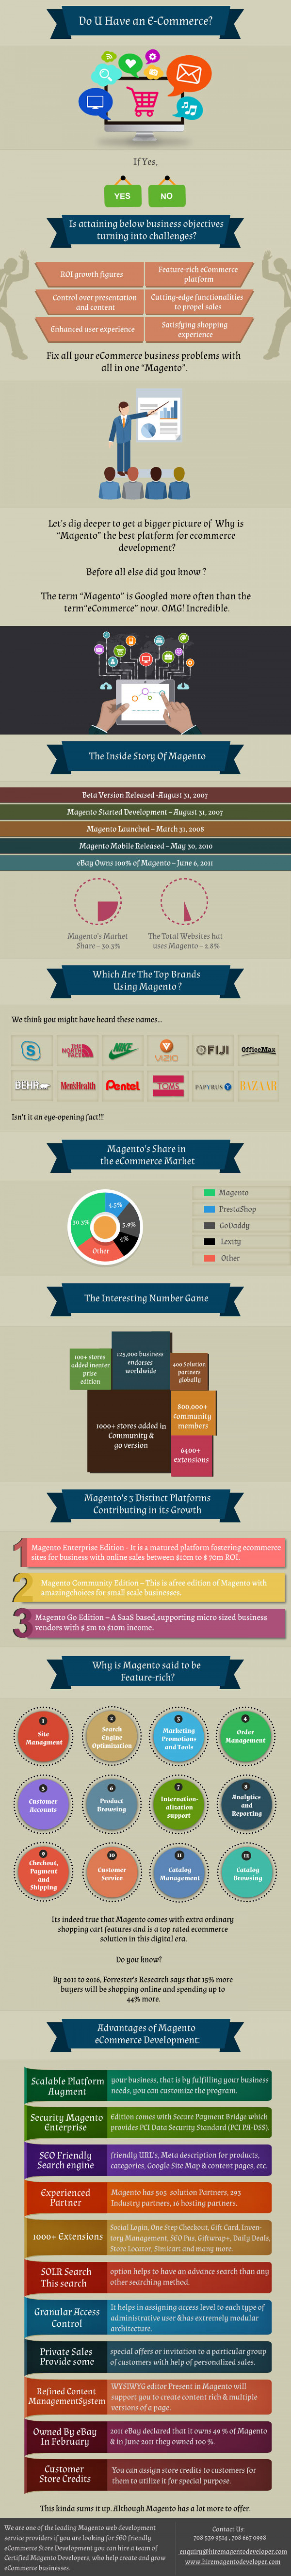 Why you should Consider Magento to increase your ROI for eCommerce store? Infographic